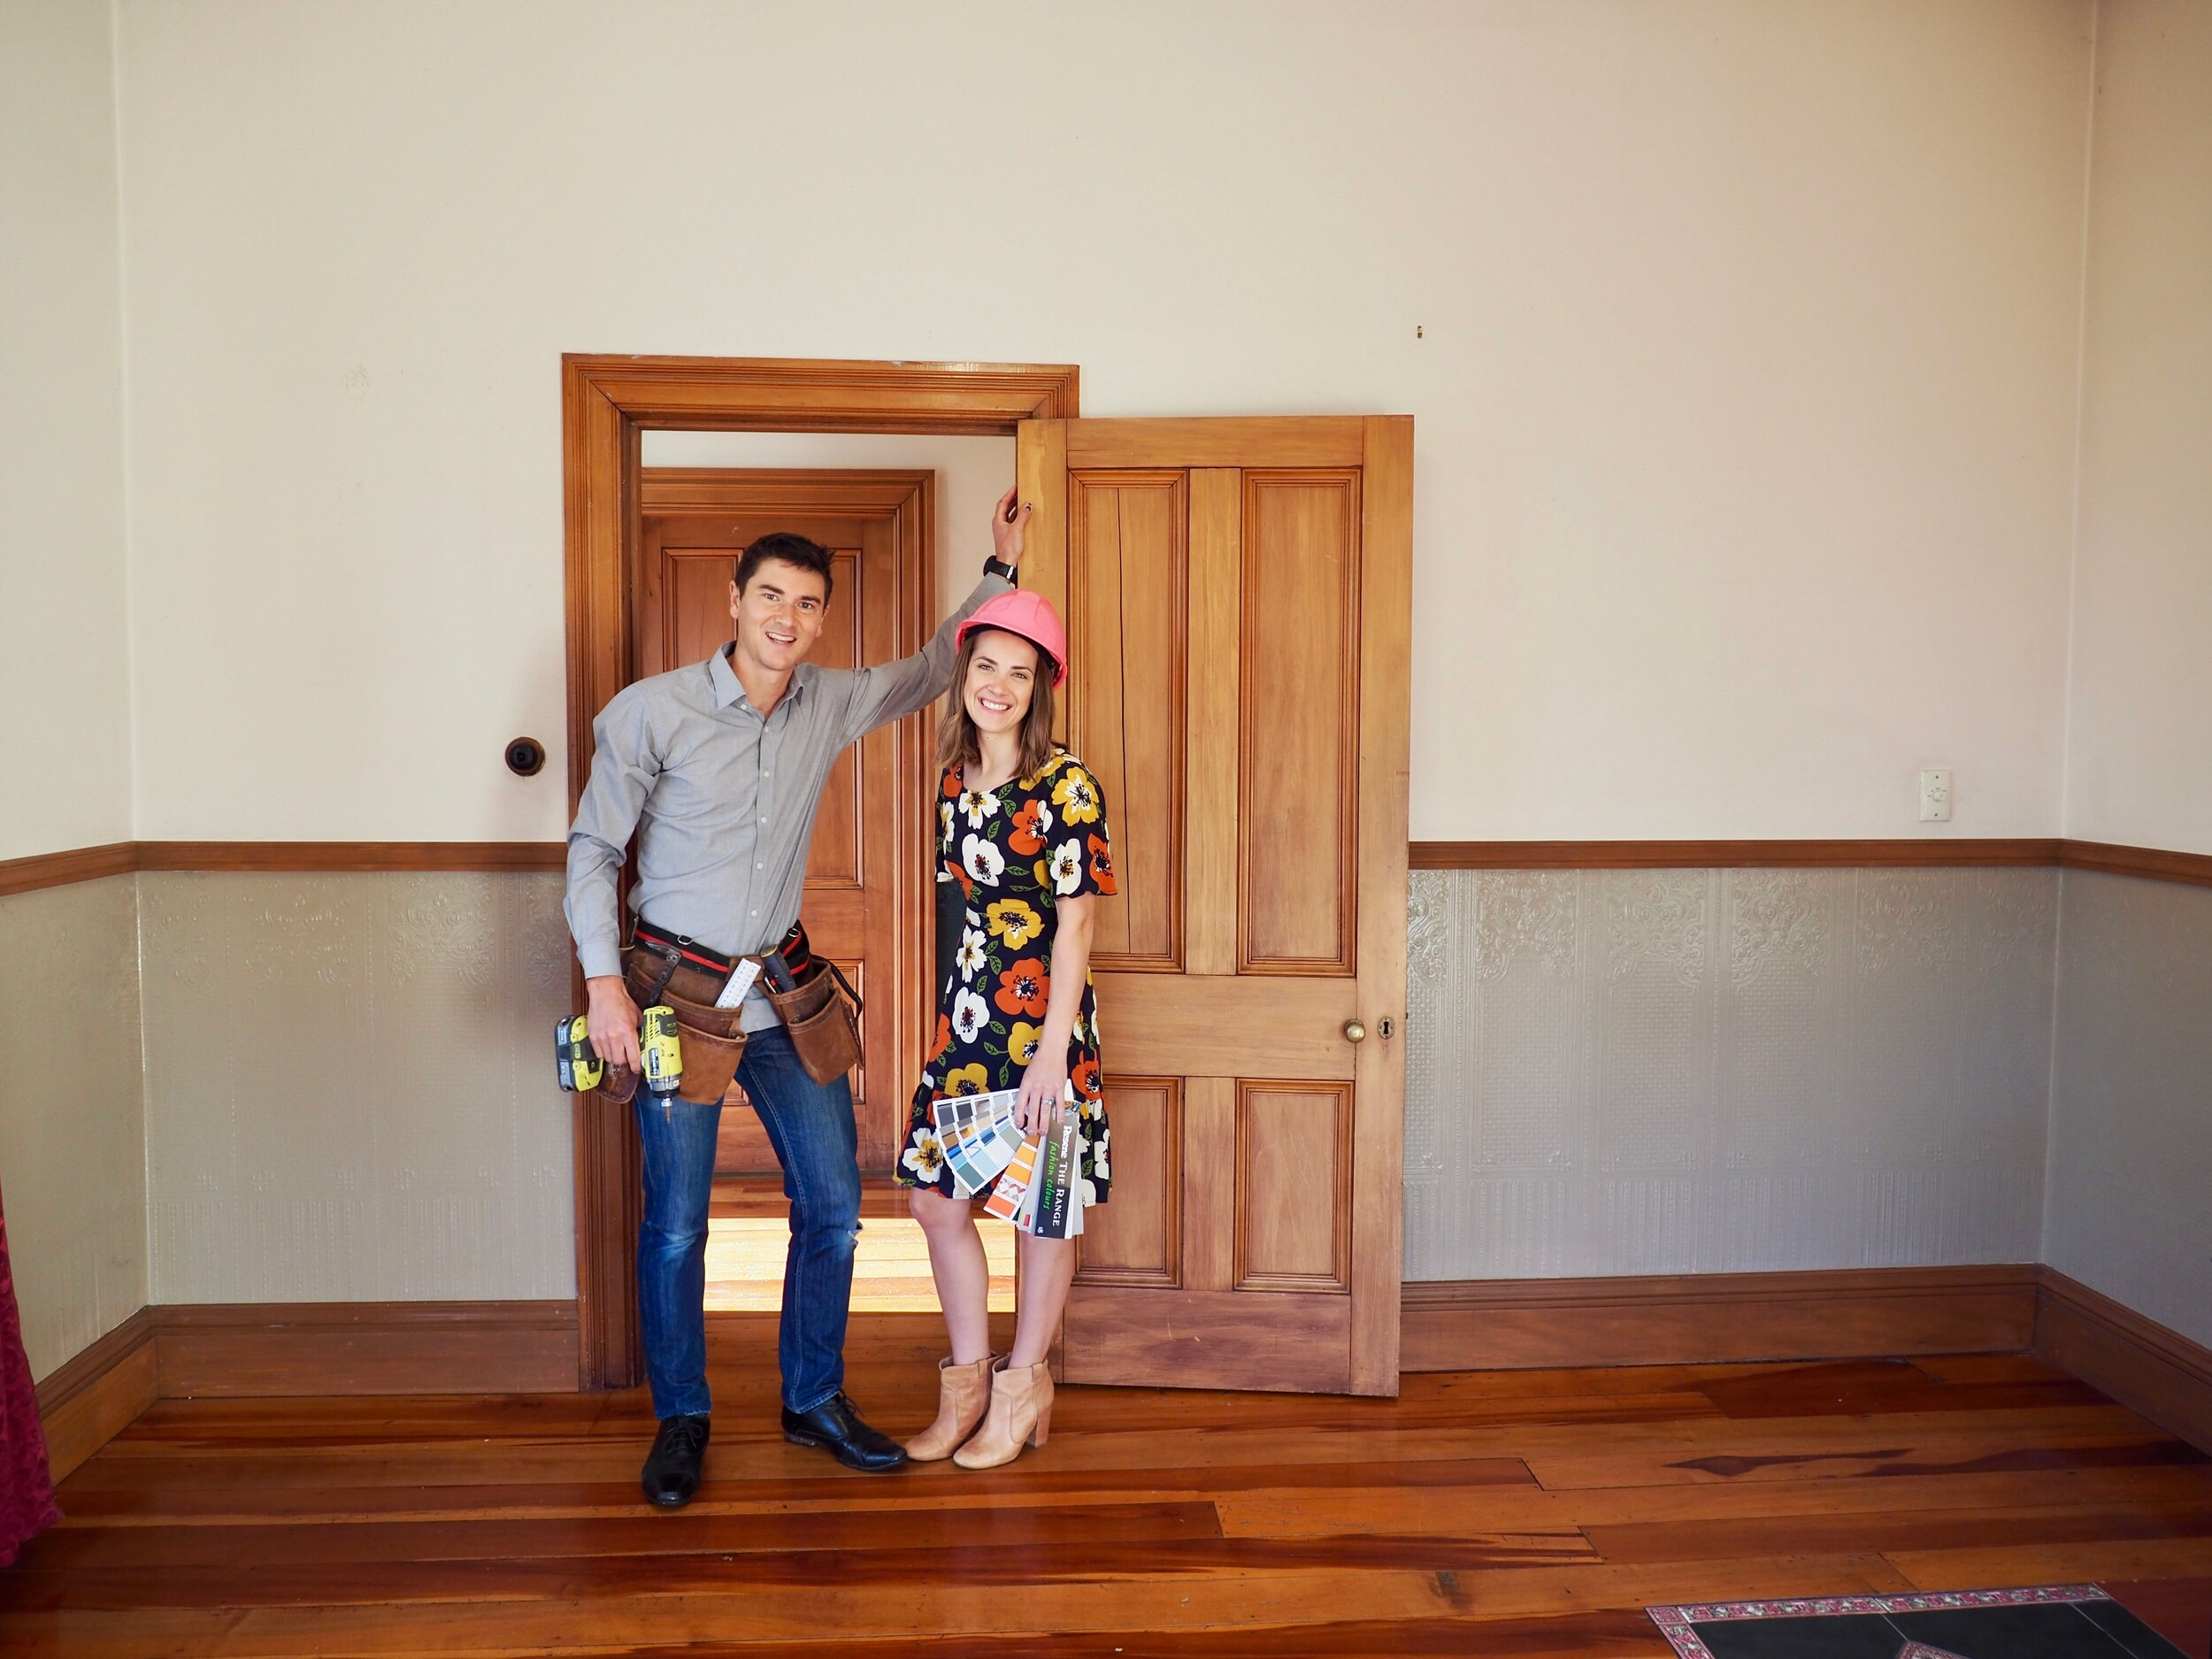 The Responsibilities of Home Ownership Pearson and Projects Alice and Caleb - 1.jpg